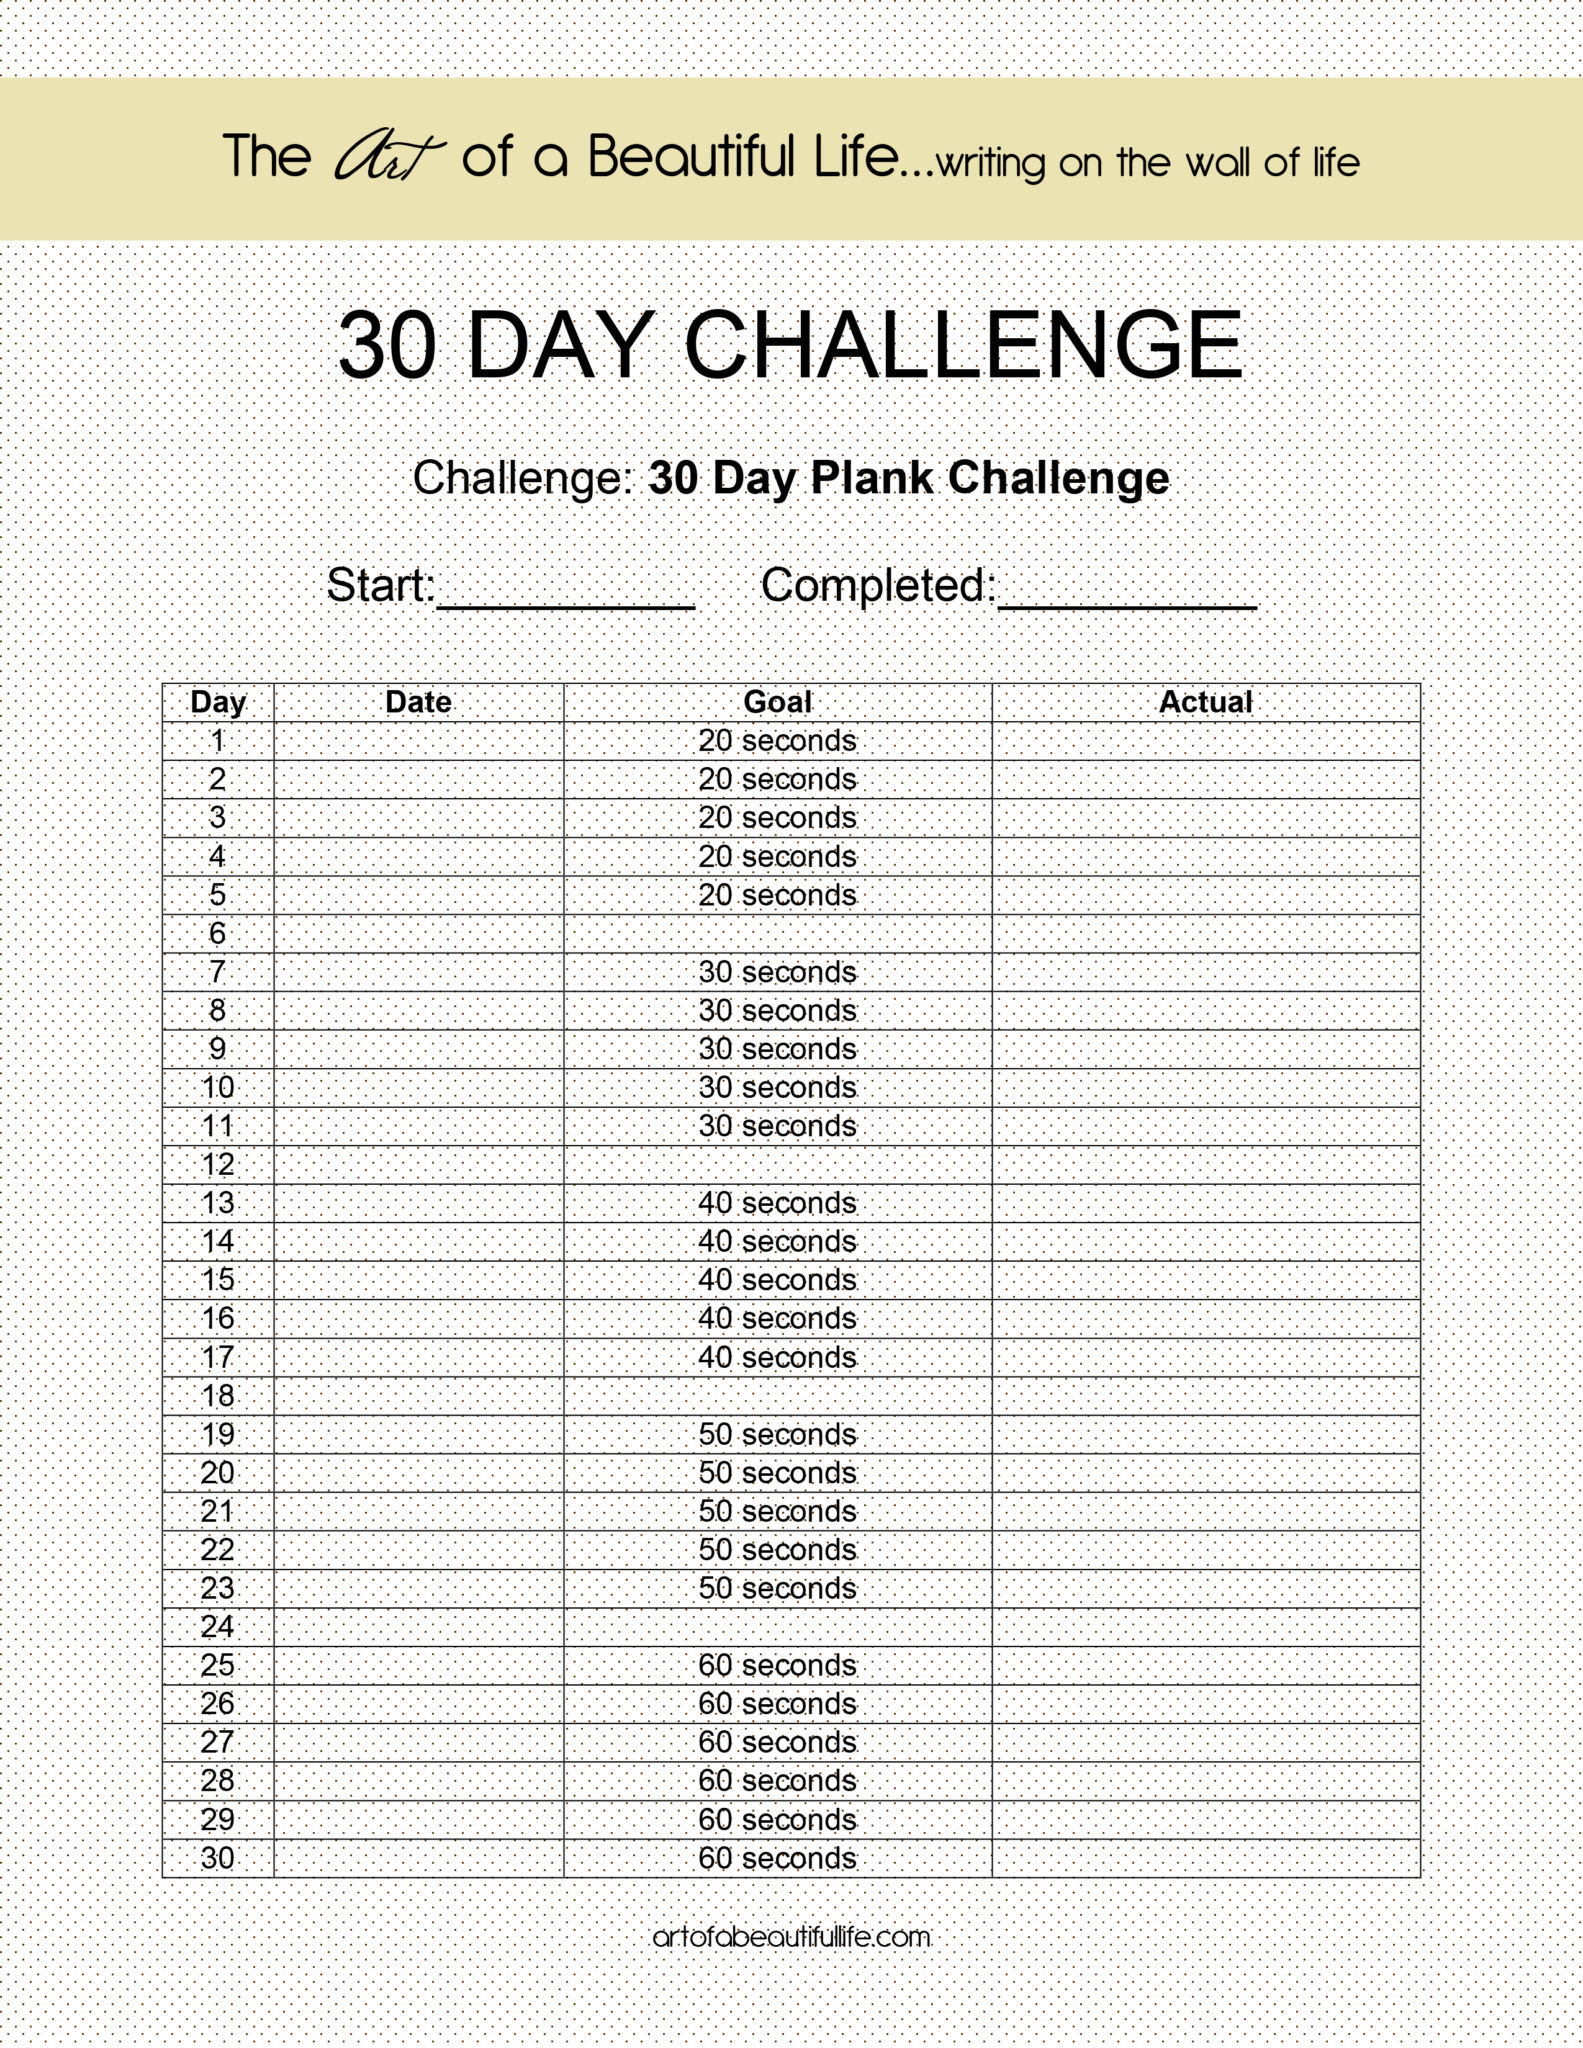 30 DAY CHALLENGE - EASY PLANK - The Art of a Beautiful Life